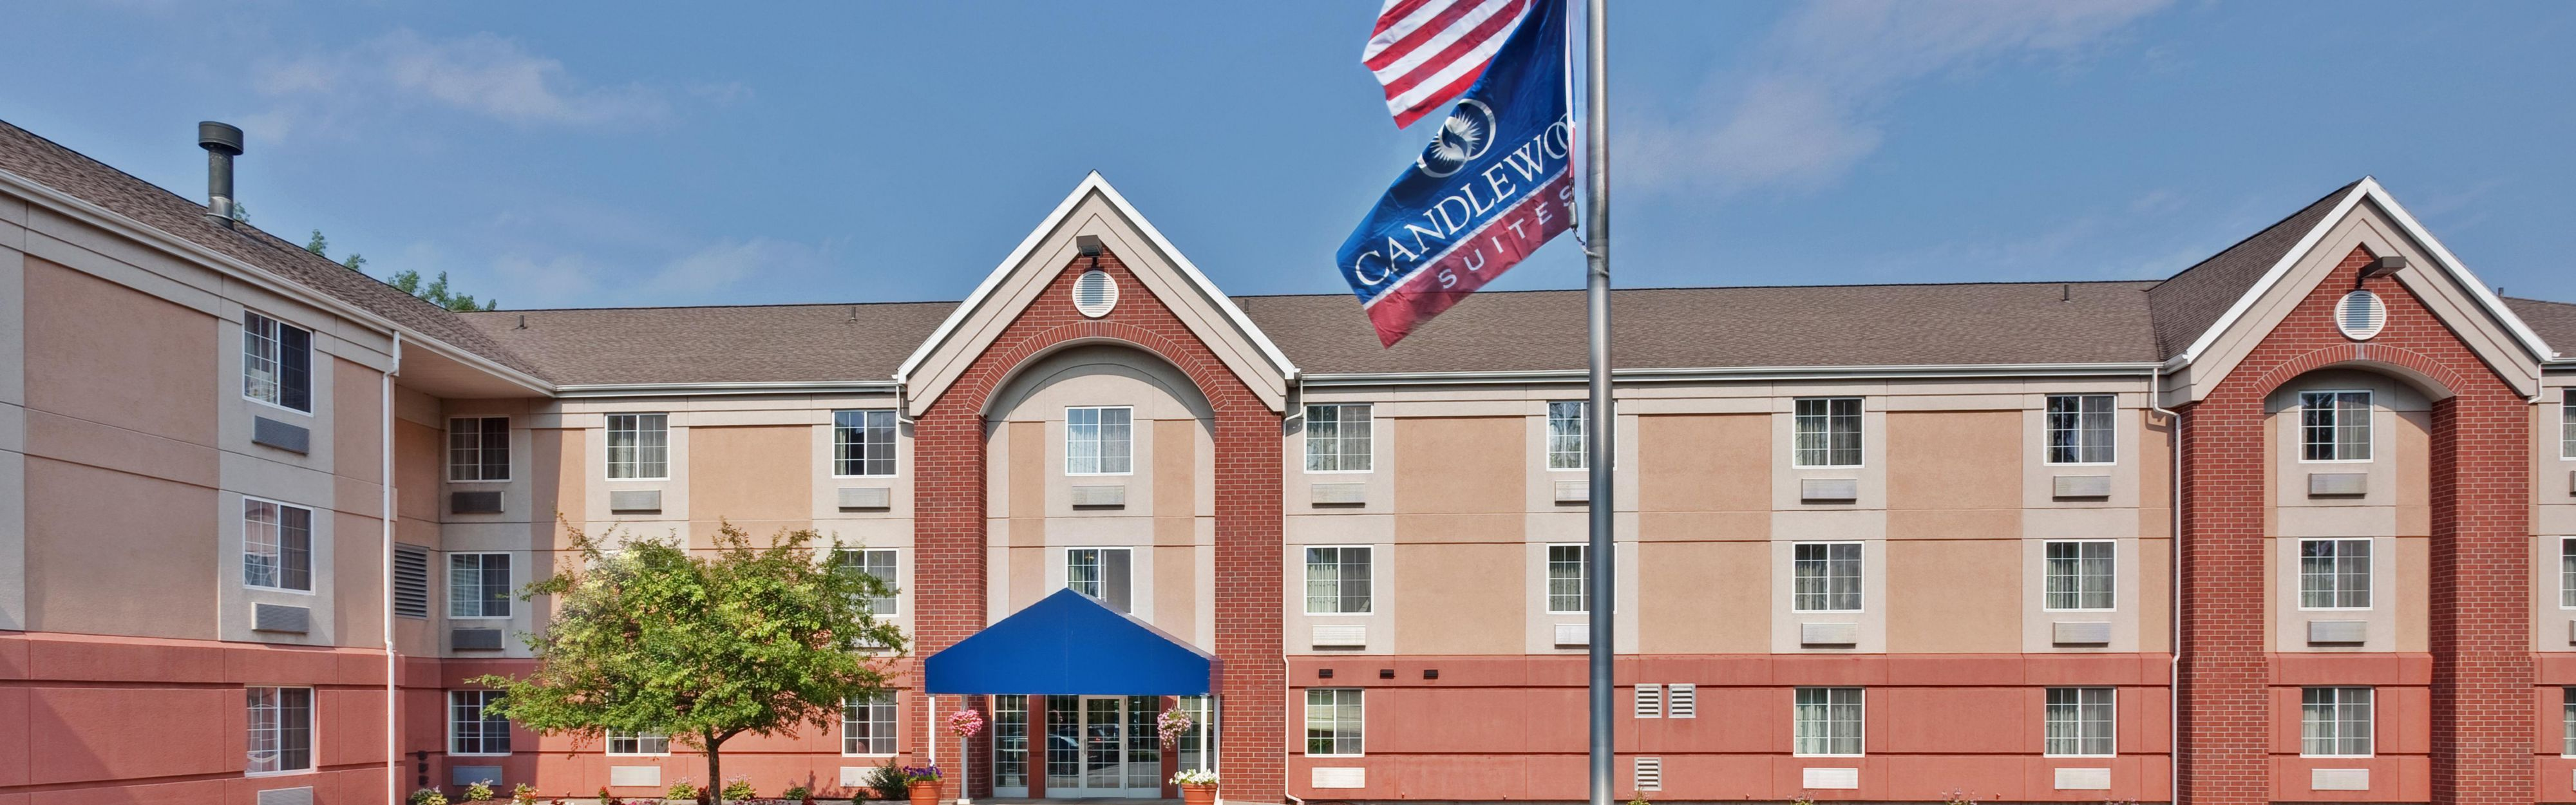 Candlewood Suites East Syracuse - Carrier Circle image 0